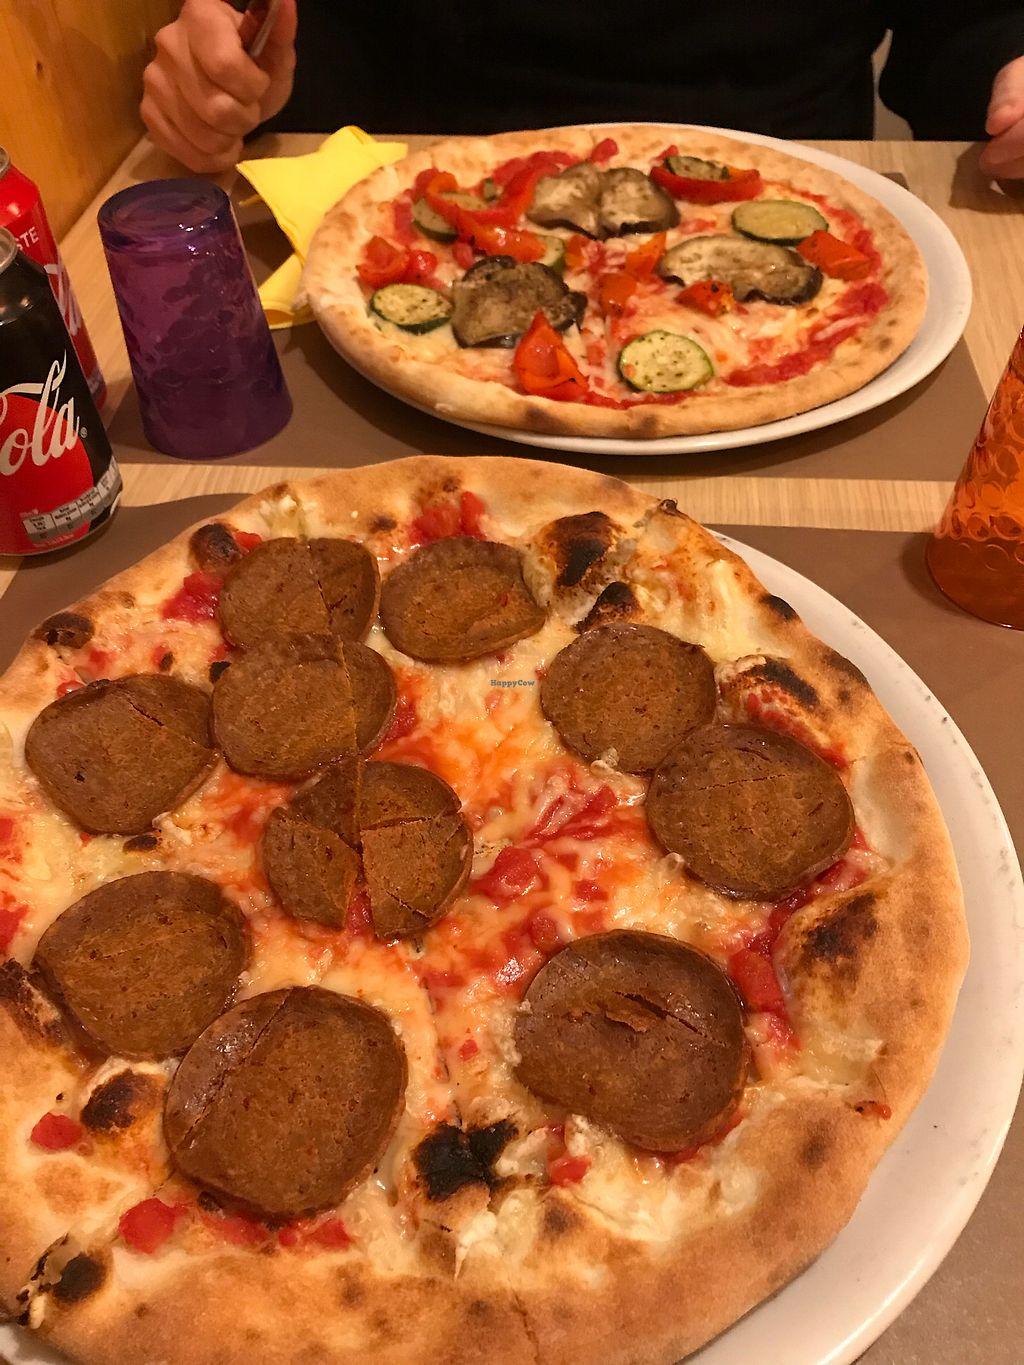 """Photo of Ai 6 Angoli  by <a href=""""/members/profile/Bianka"""">Bianka</a> <br/>""""Salami"""" and grilled veggie pizzas <br/> February 23, 2018  - <a href='/contact/abuse/image/74783/362889'>Report</a>"""